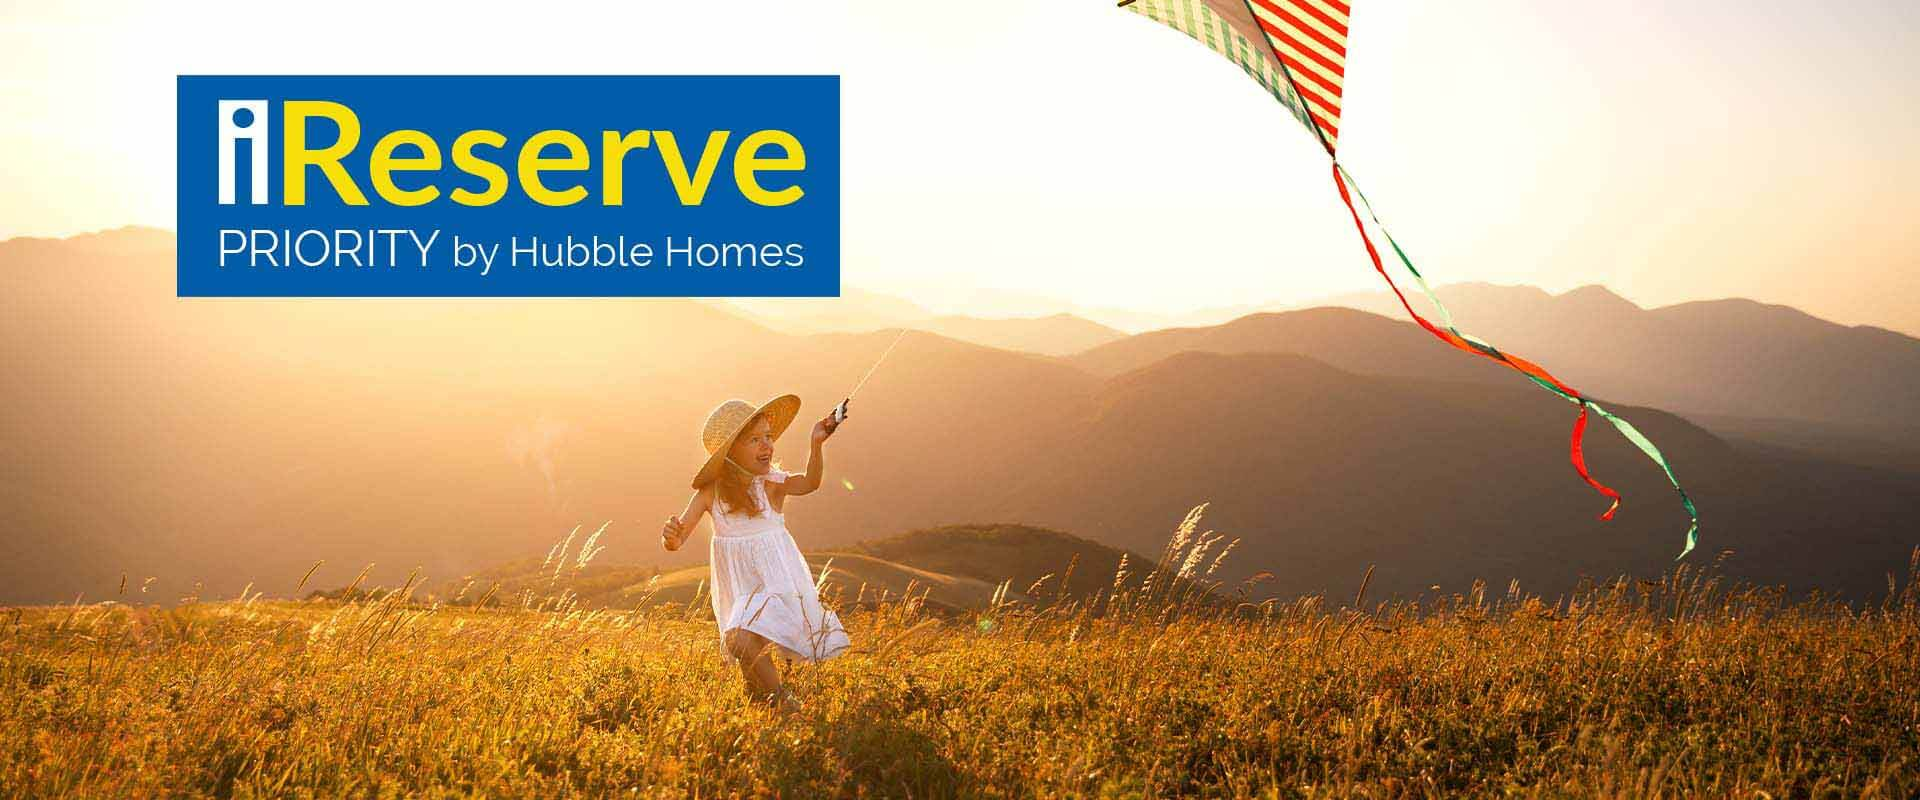 reserve-your-lot-new-home-hubble-homes-02.jpg